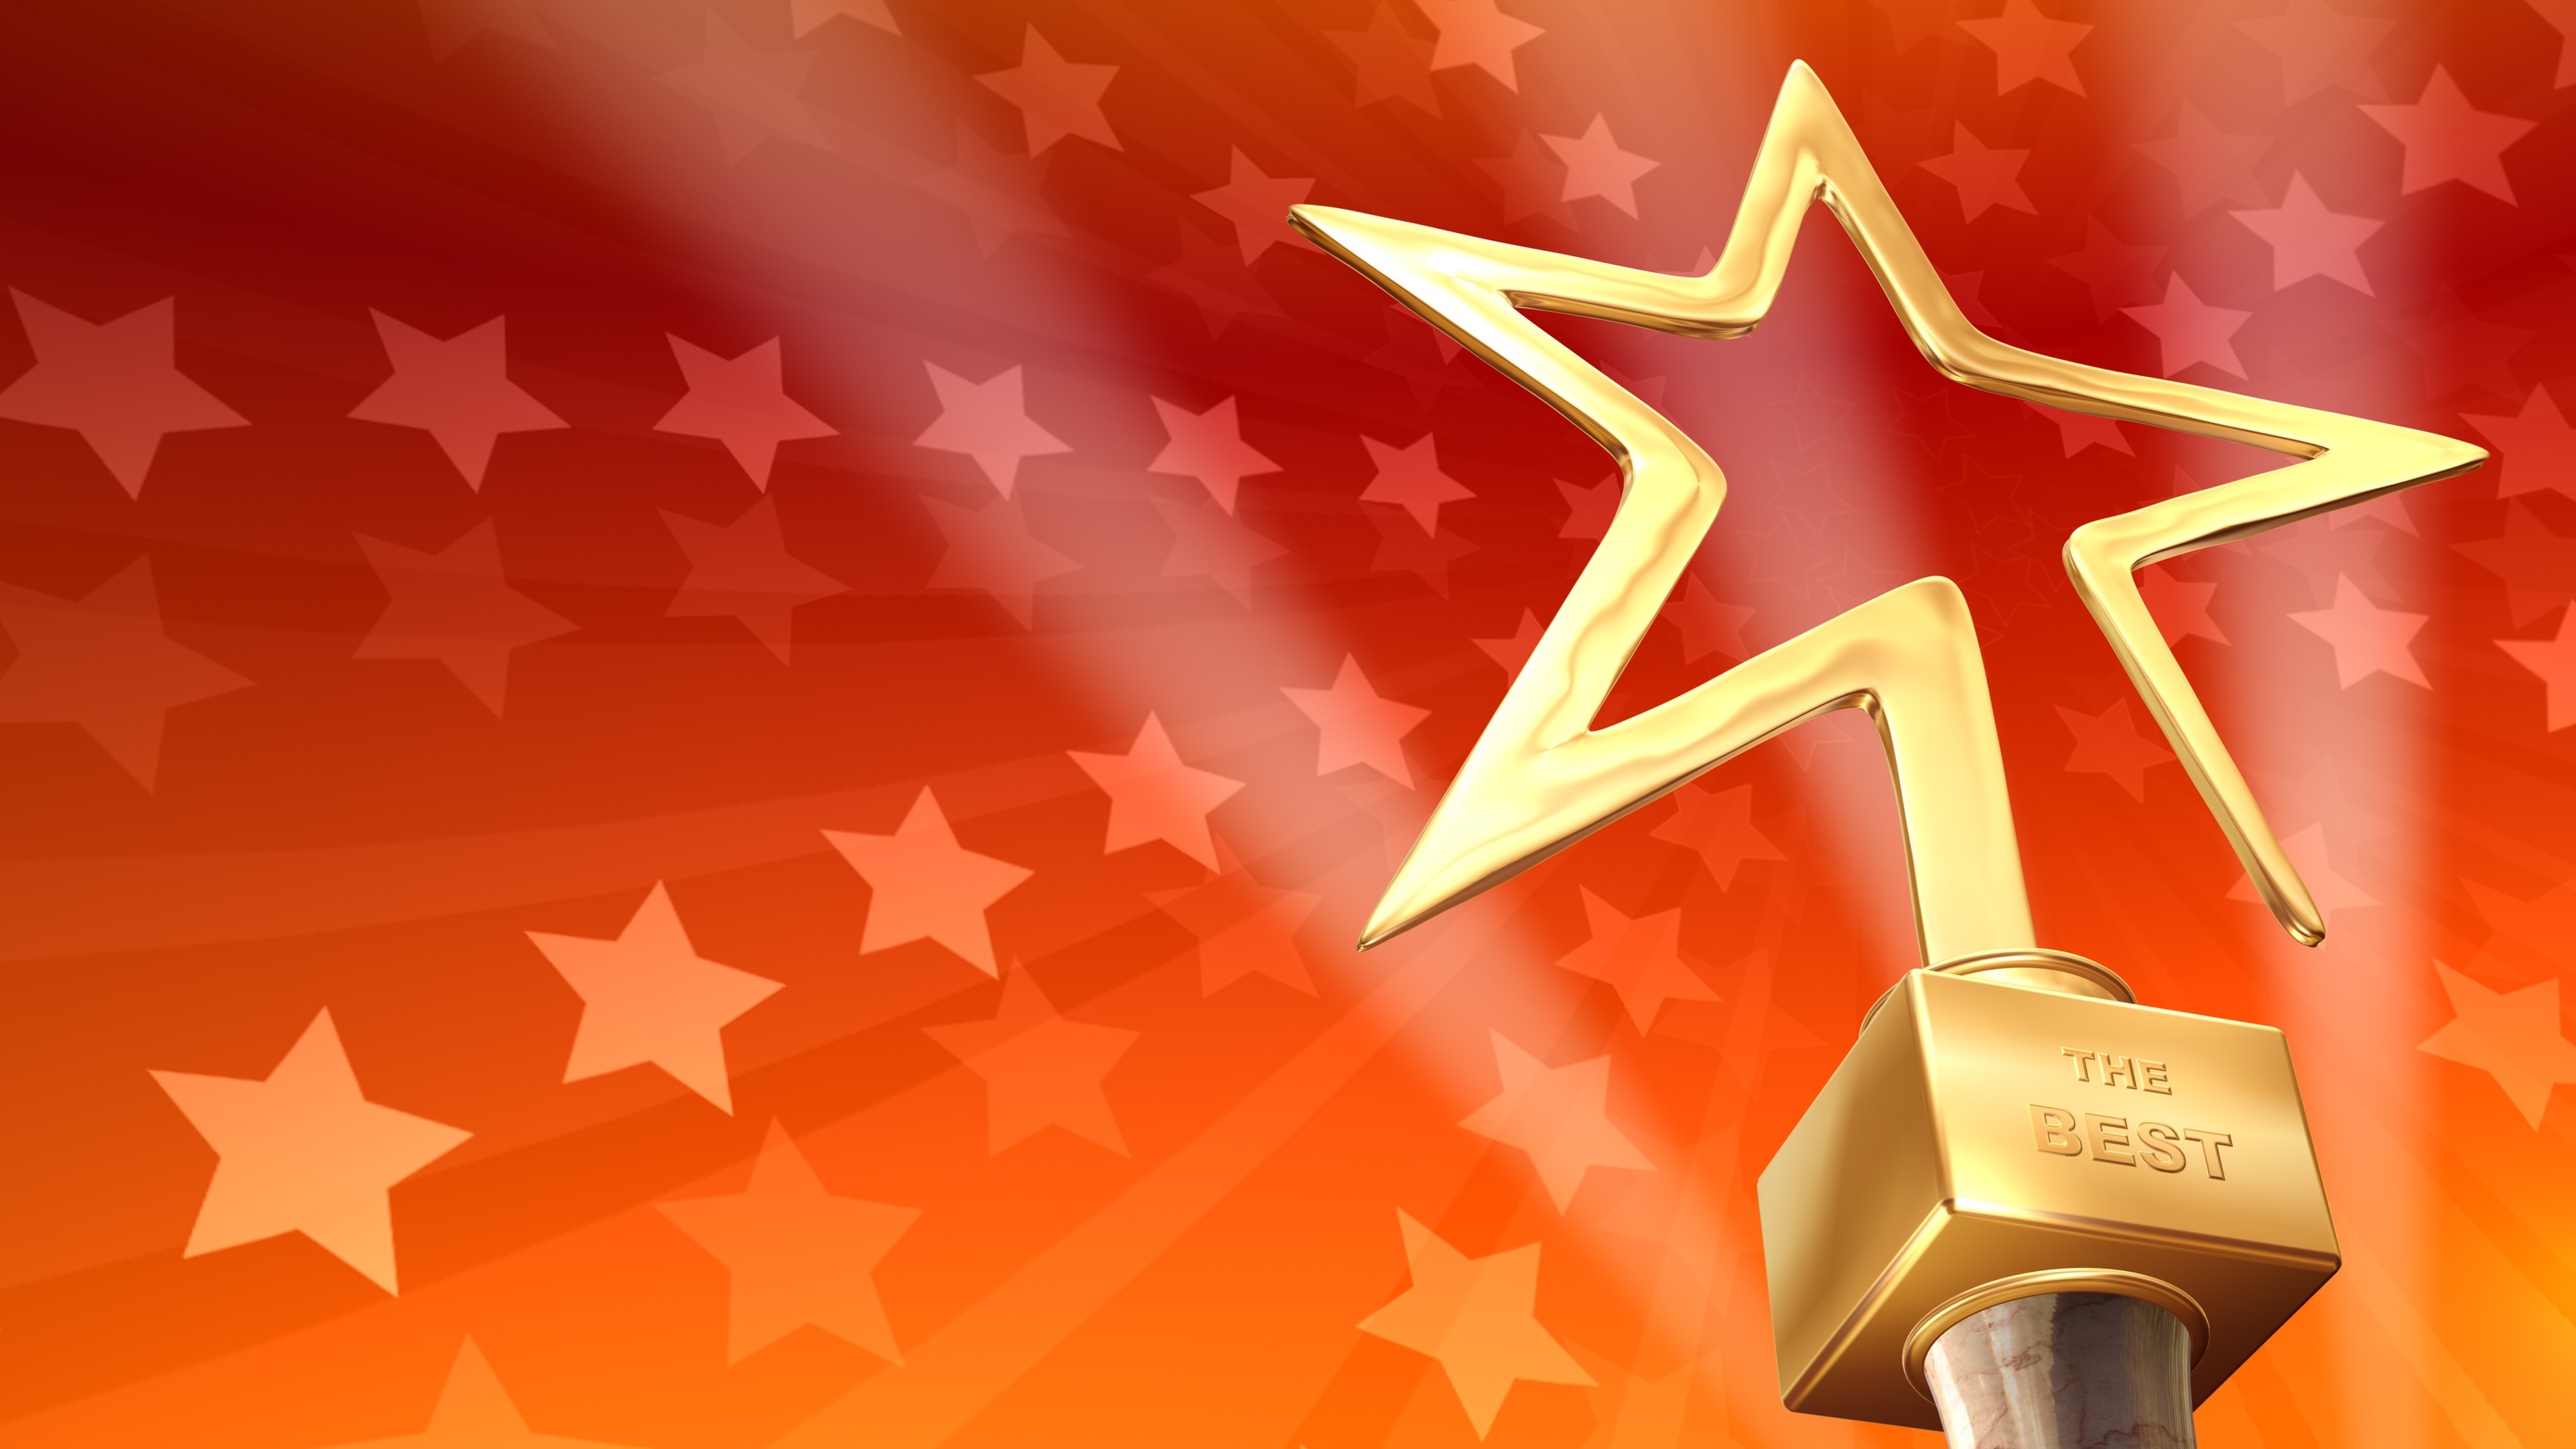 Gold-star-trophy-iStock-16-9